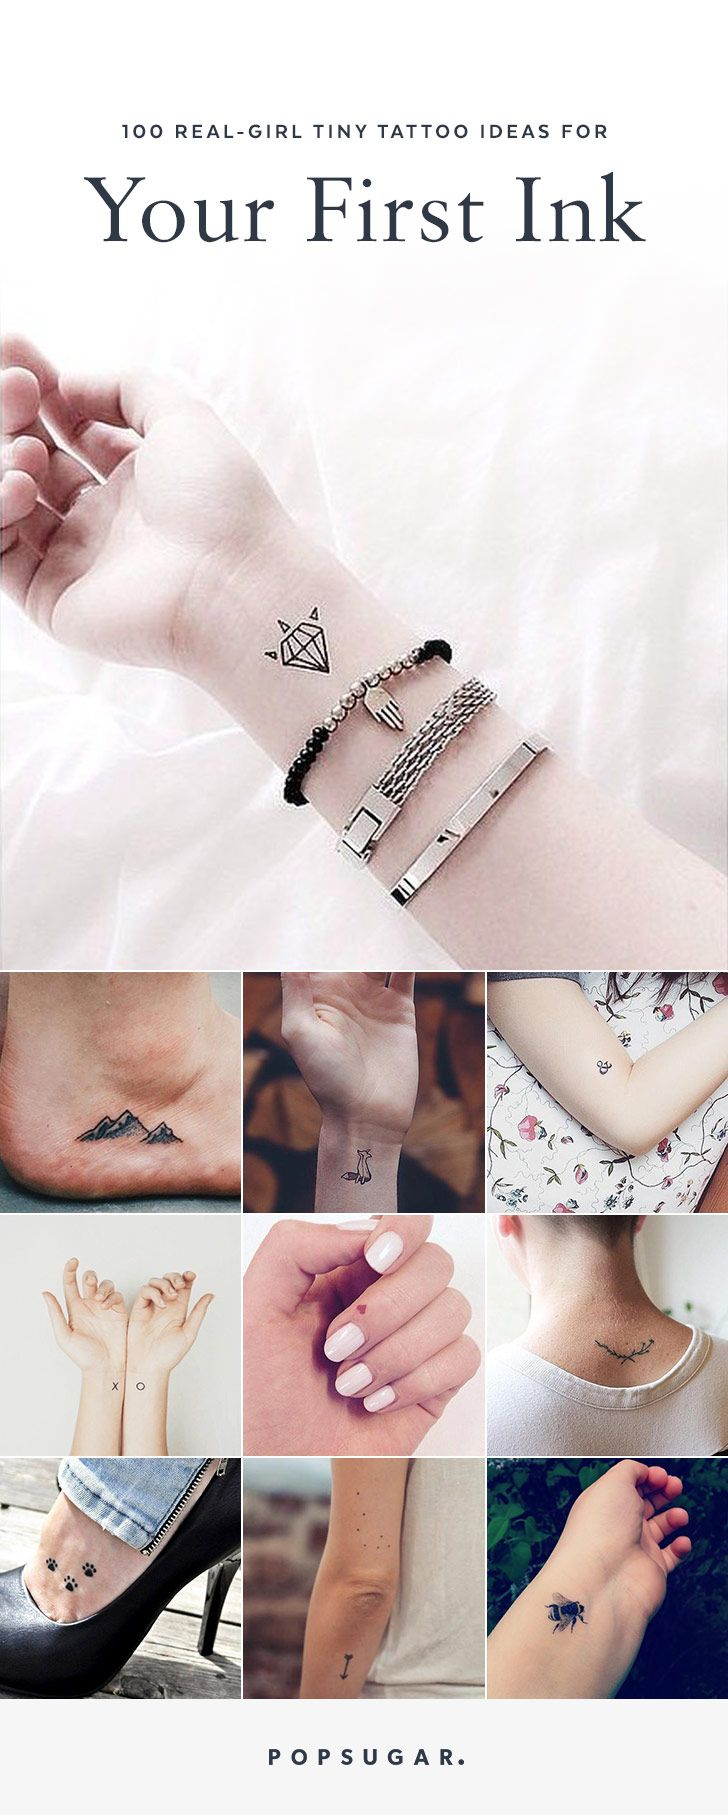 Tiny girl tattoo ideas  realgirl tiny tattoo ideas for your first ink  ideas for